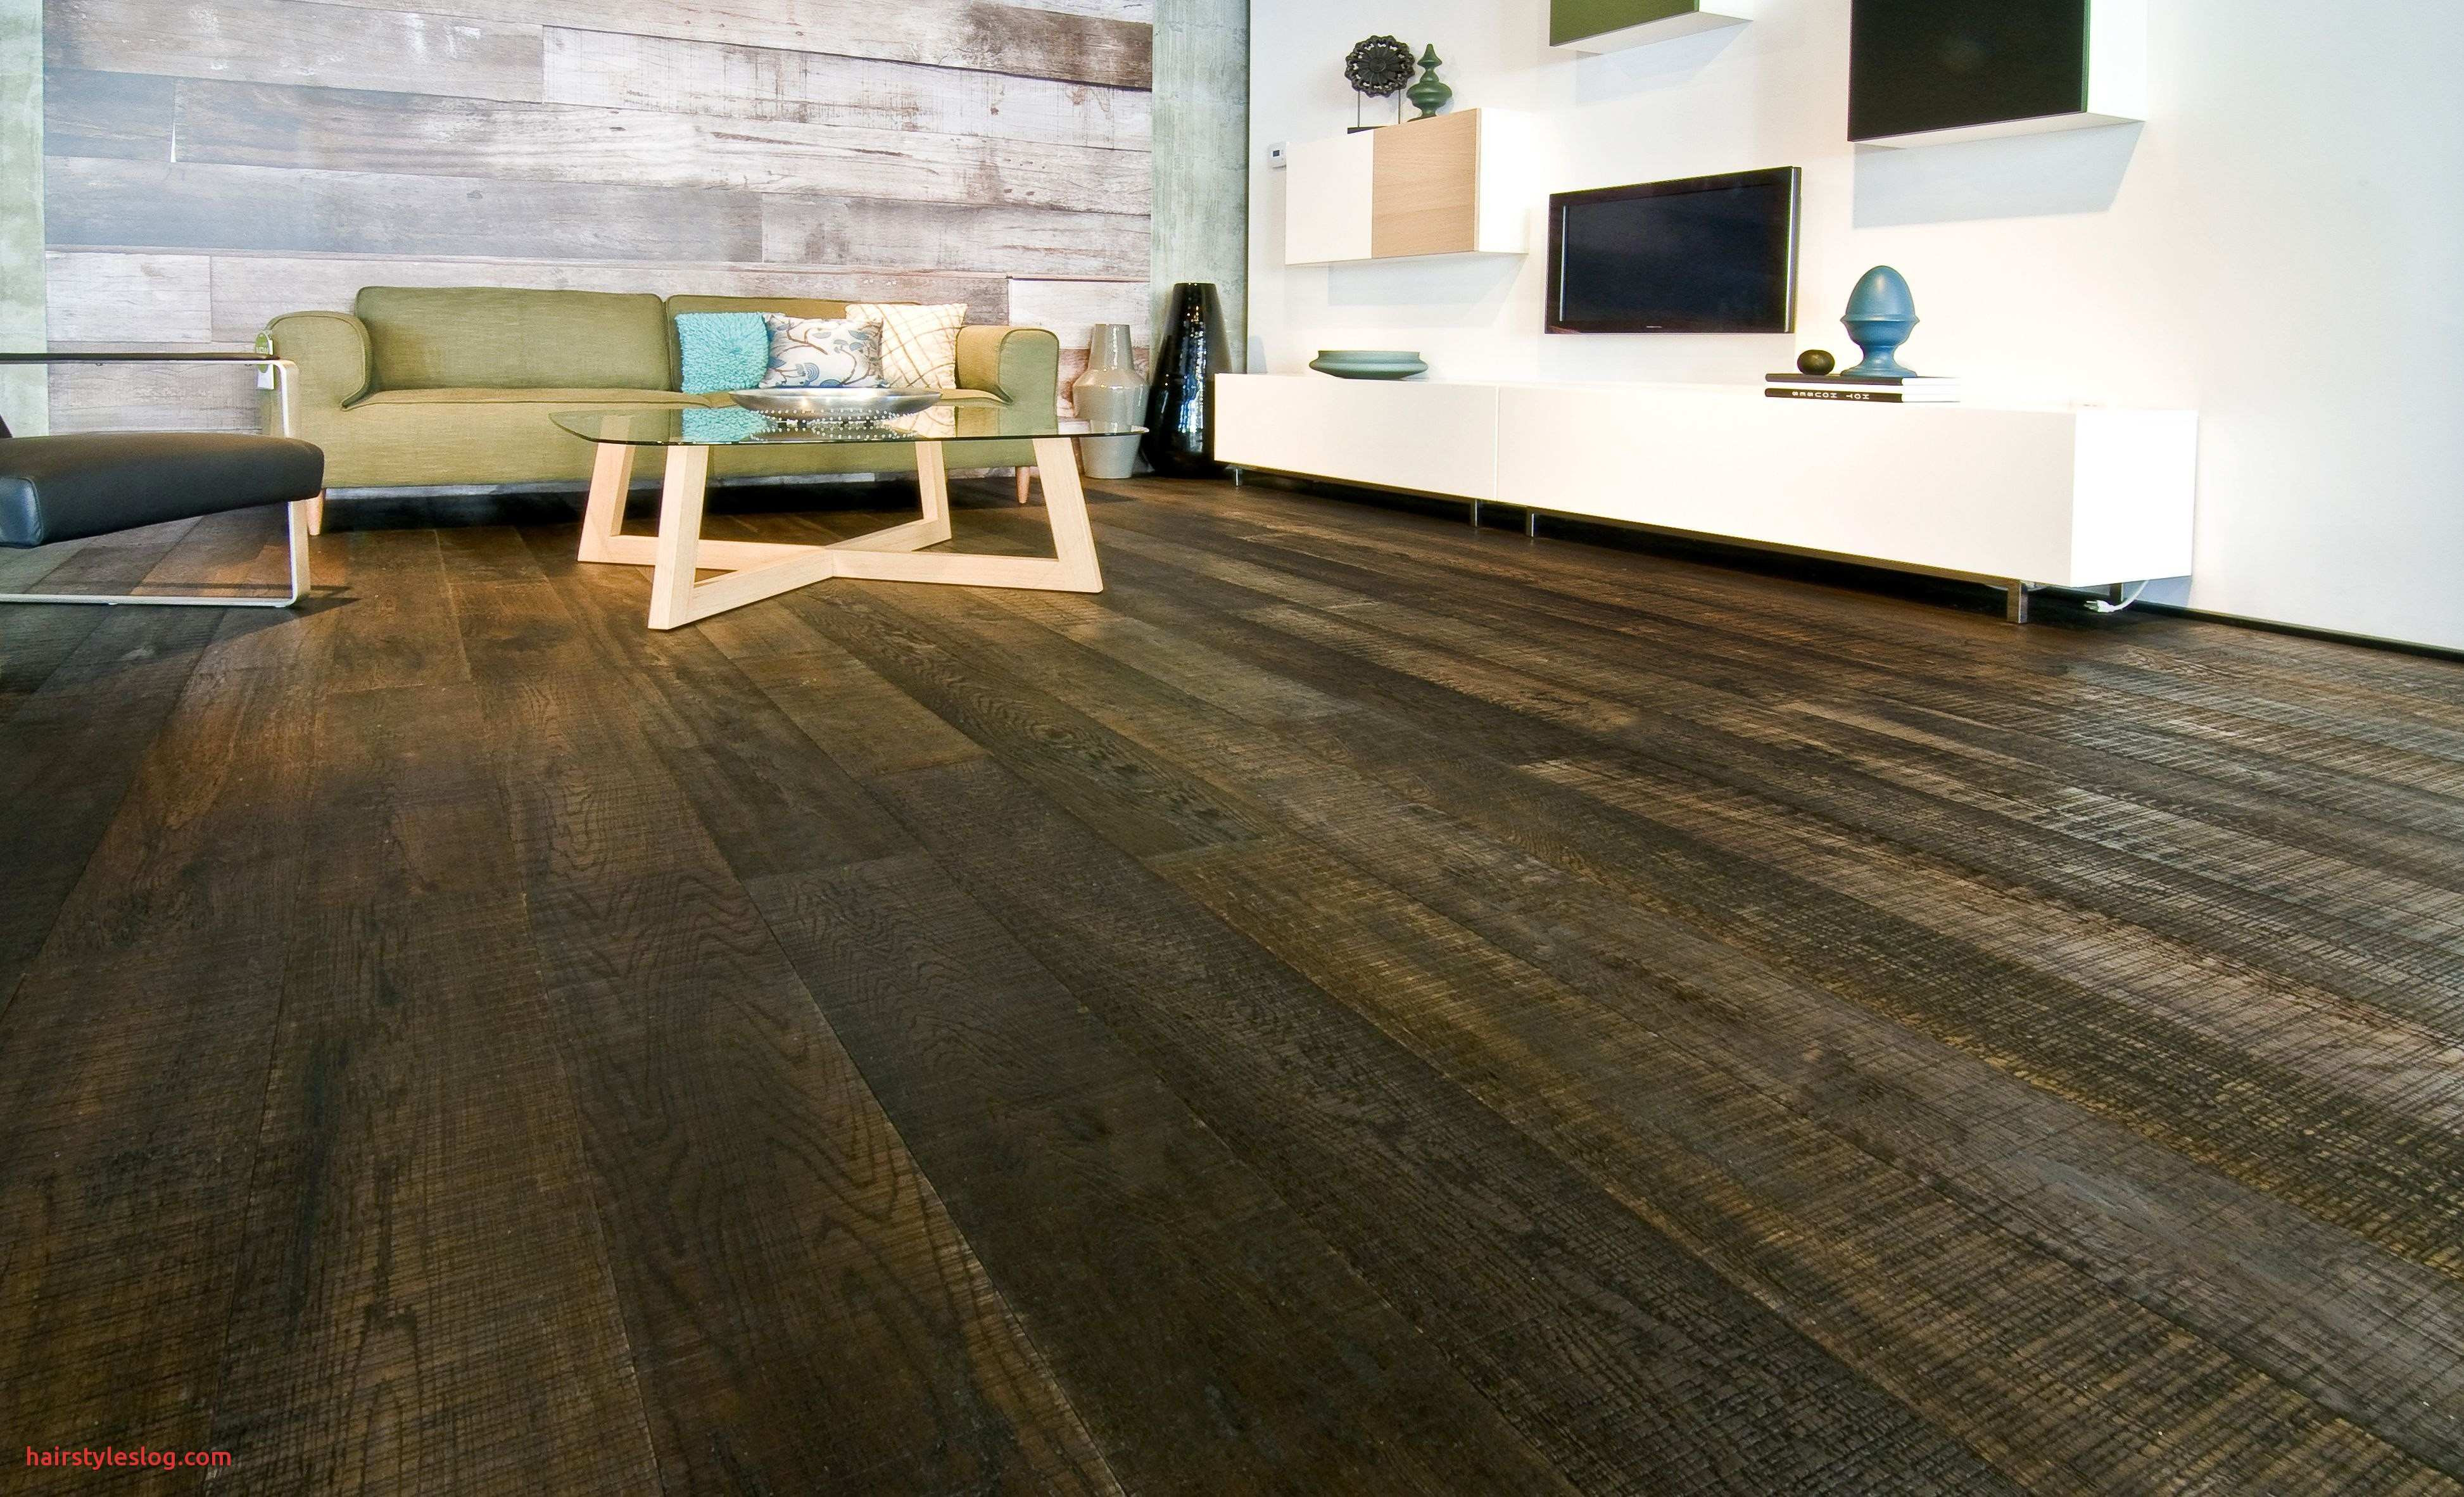 hardwood floor installation quote of new flooring cost pertaining to household remodel caribbeanchick inside cost of hard wood floors new perfect hardwood floors cost lovely 0d